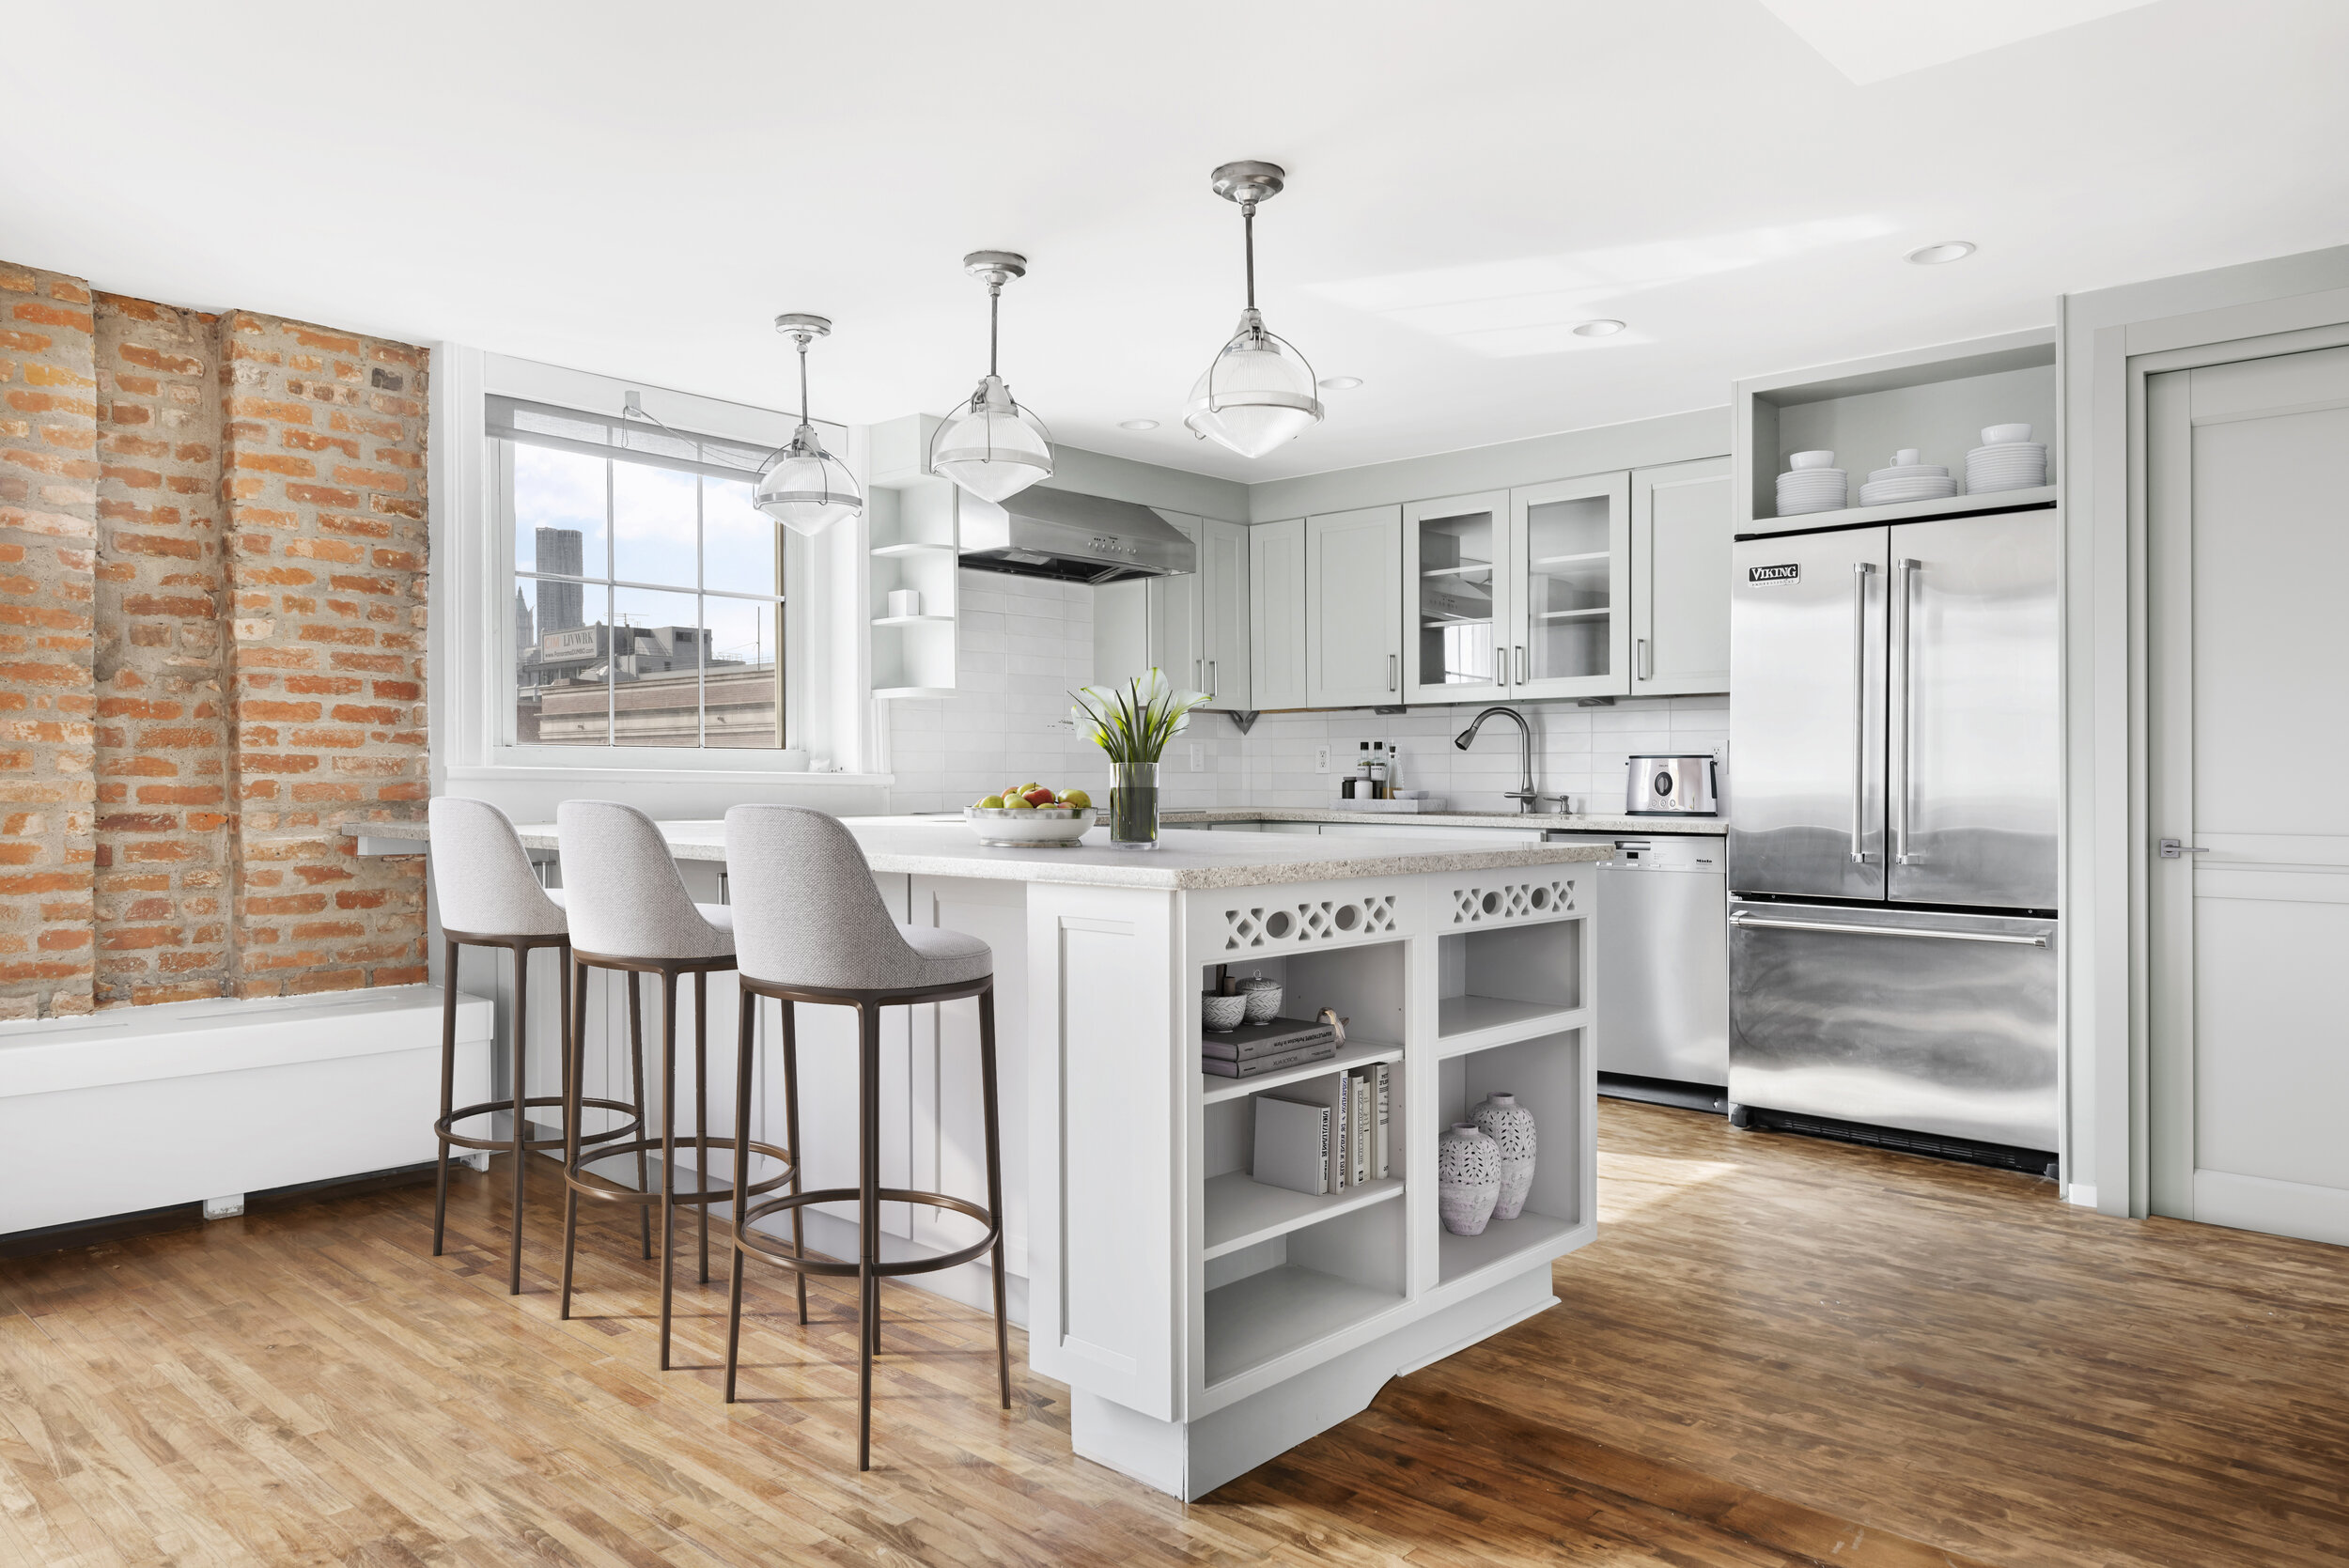 The homeowners took a practical approach to renovating the kitchen, which was given a simple, cosmetic refresh with fresh paint and custom tile backsplash.